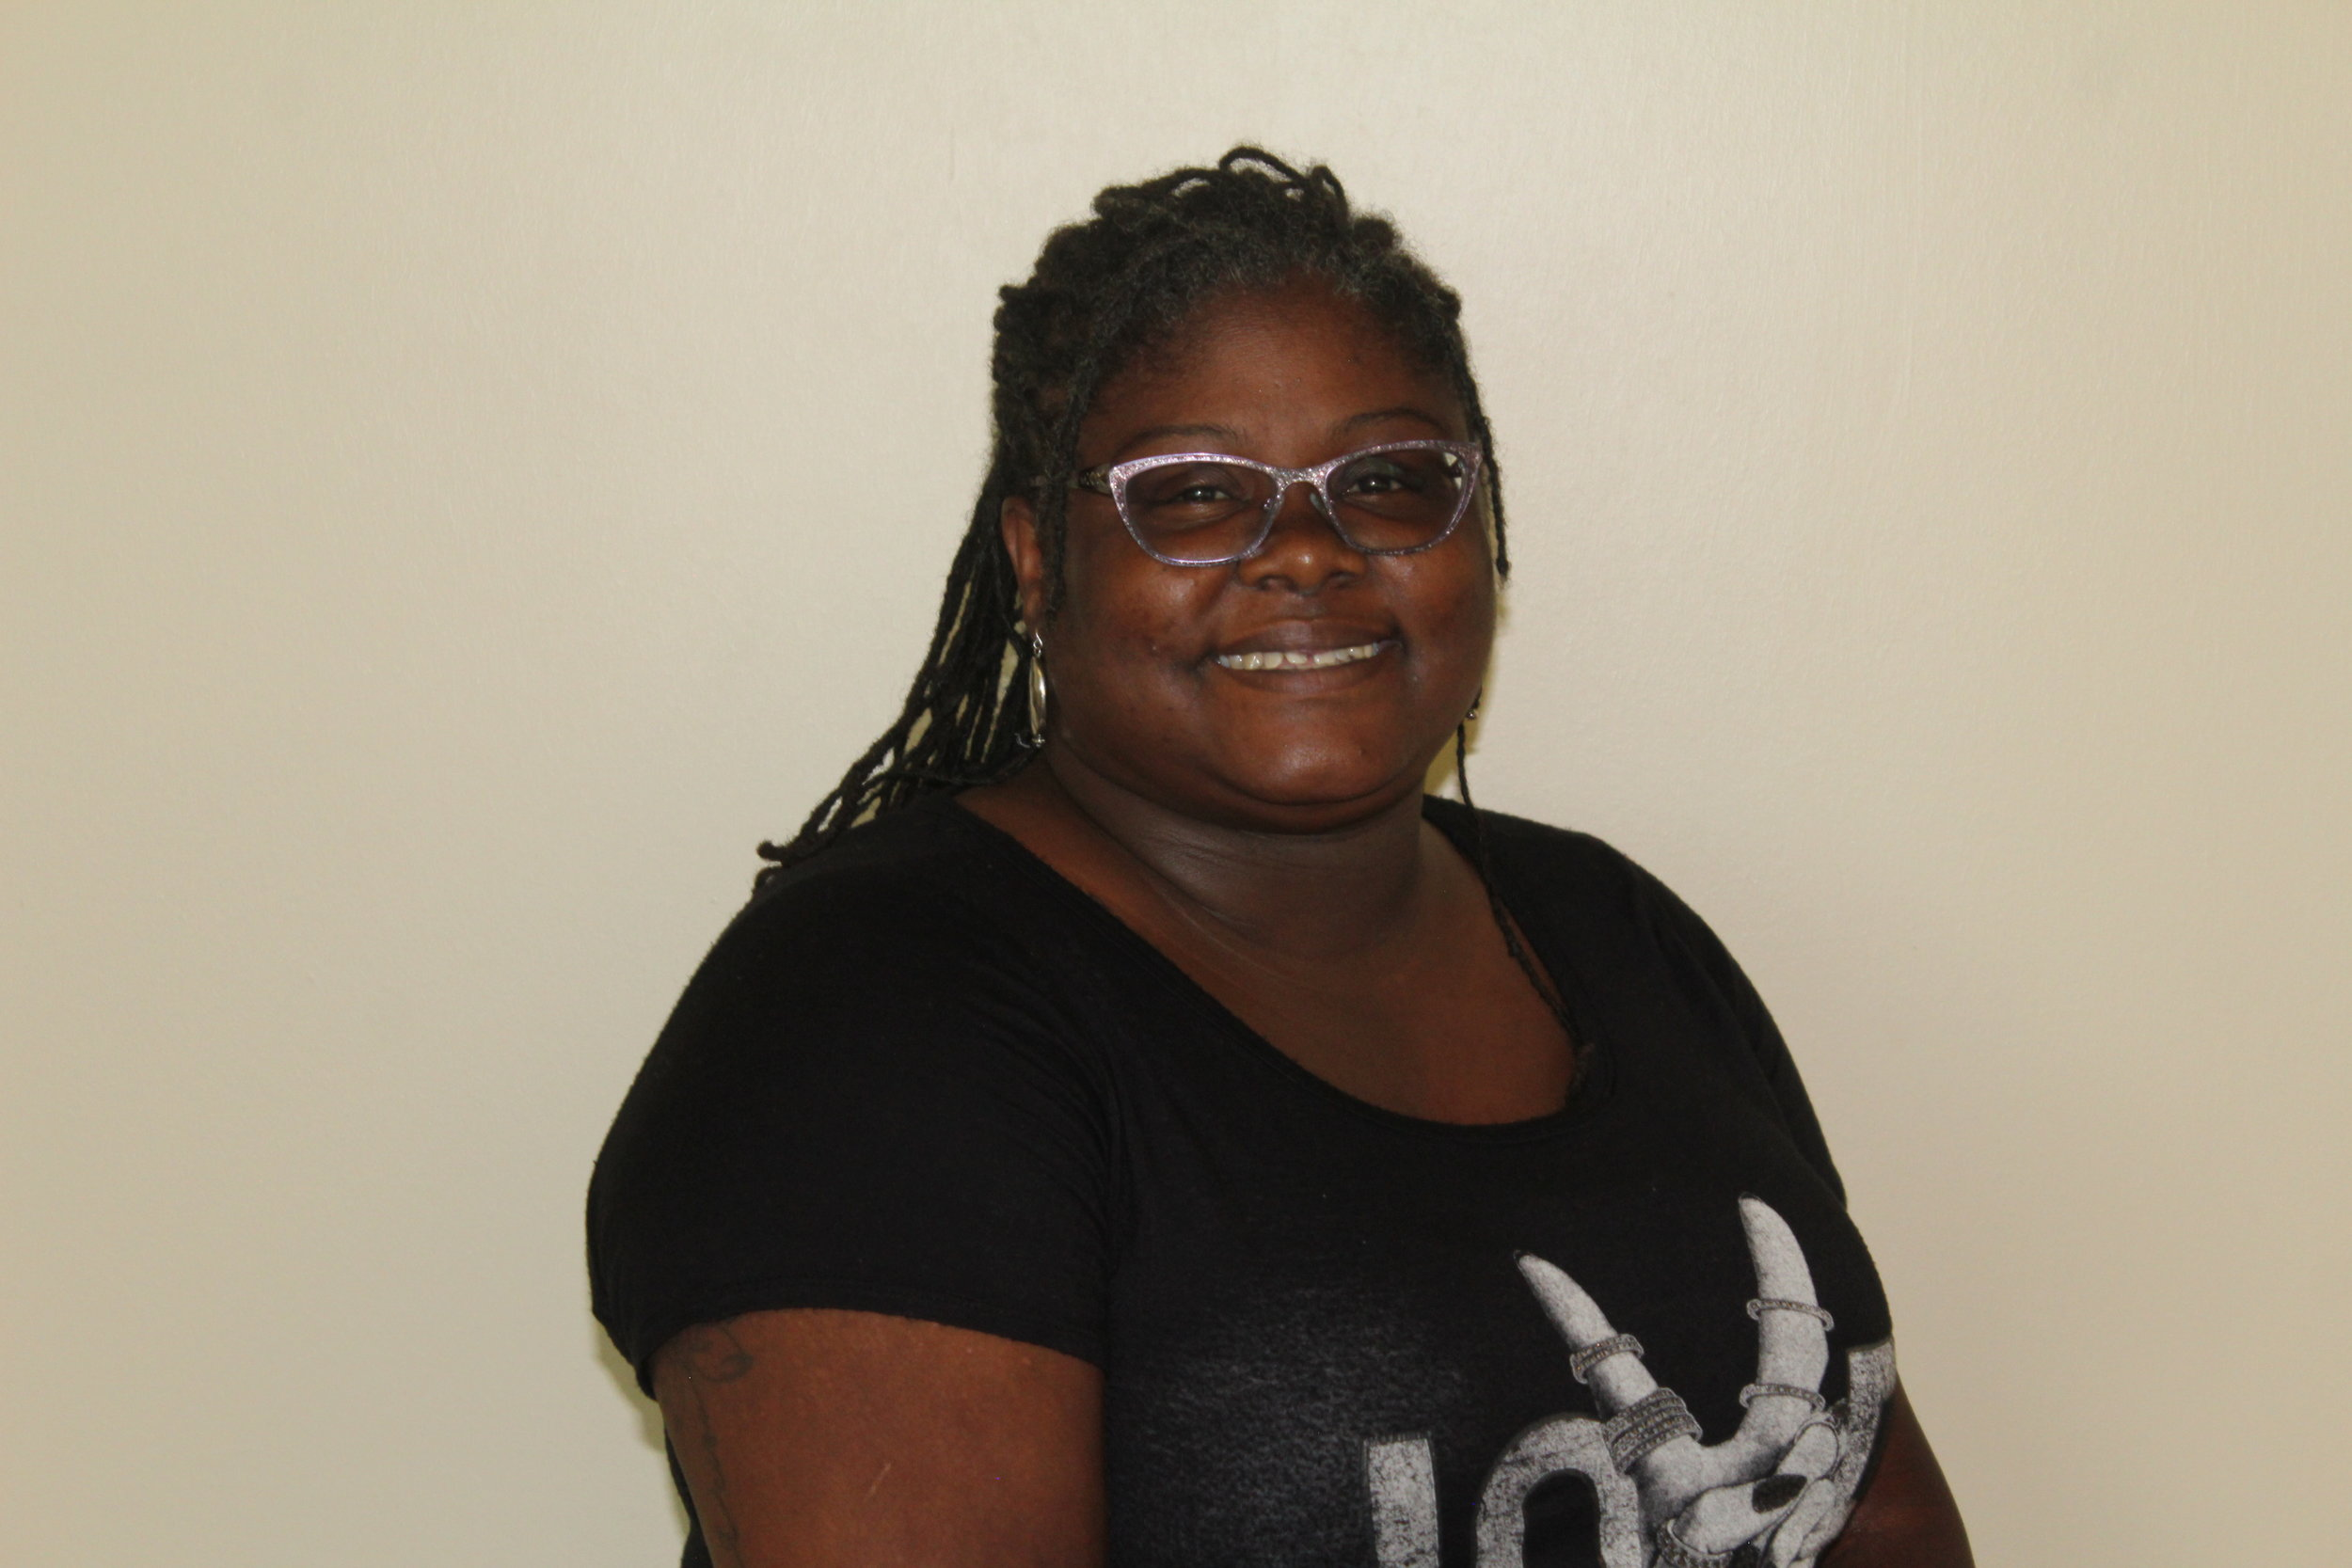 Shawana Carter, Community Leader